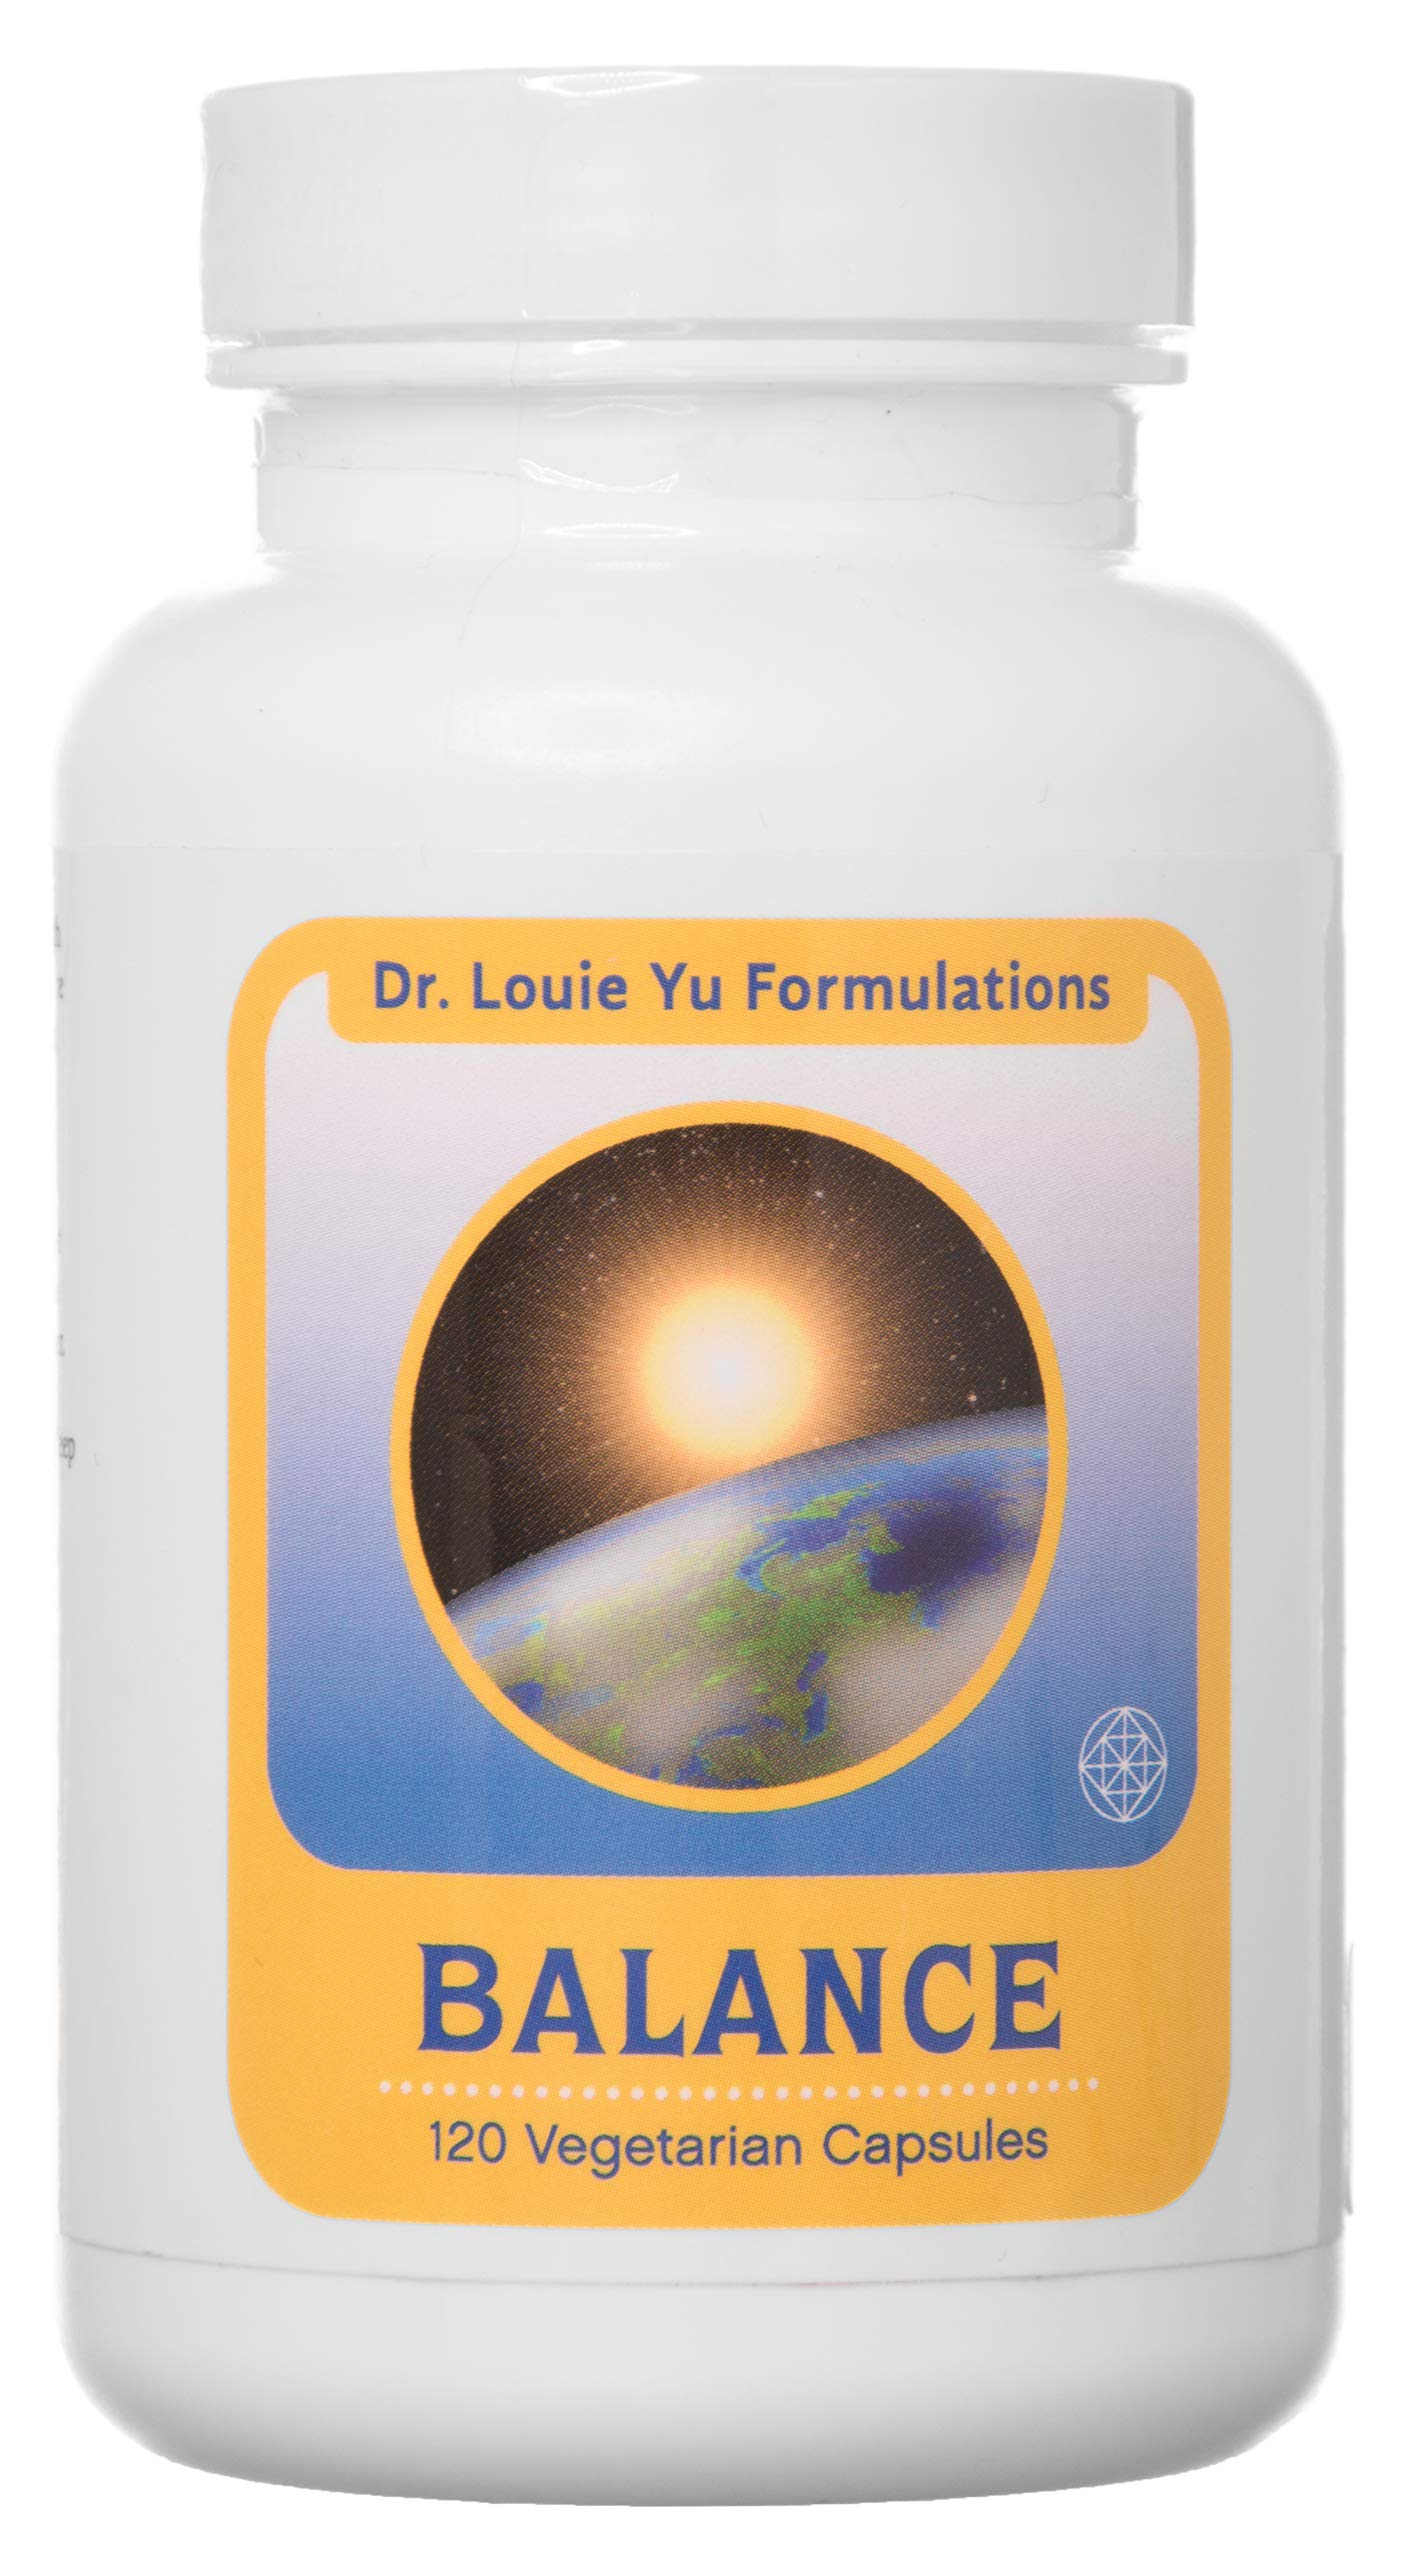 Dr. Louie Yu Formulations Balance All-Natural Relief for Symptoms of Irritable Bowel Syndrome (IBS) Including Bloating, Constipation, Gas, Diarrhea | Supports Digestive Health | 120 Veg Capsules by  Dr. Louie Yu Formulations